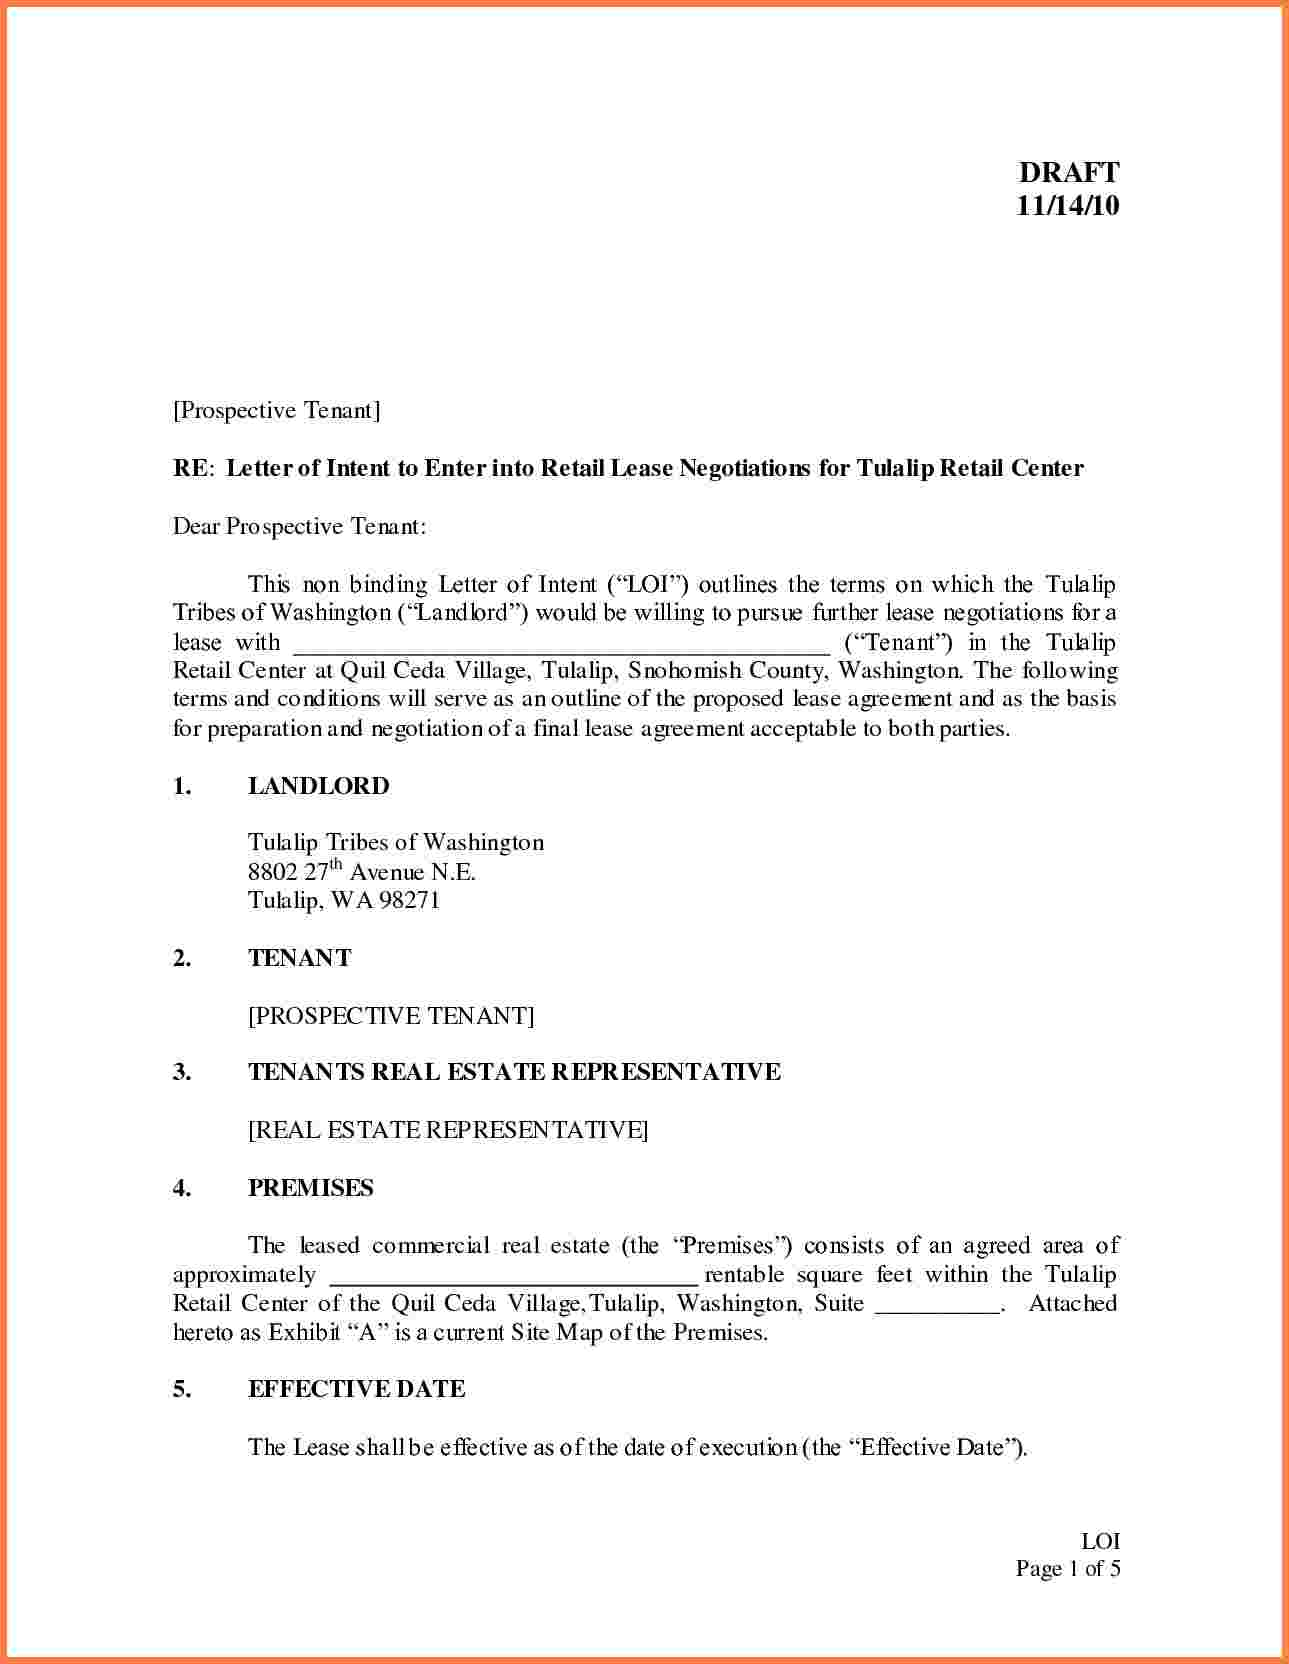 letter of intent commercial lease template example-mercial Lease Letter Intent Template Letter Intent Real Estate Lease Example Restaurant Sample Renewal 5-n